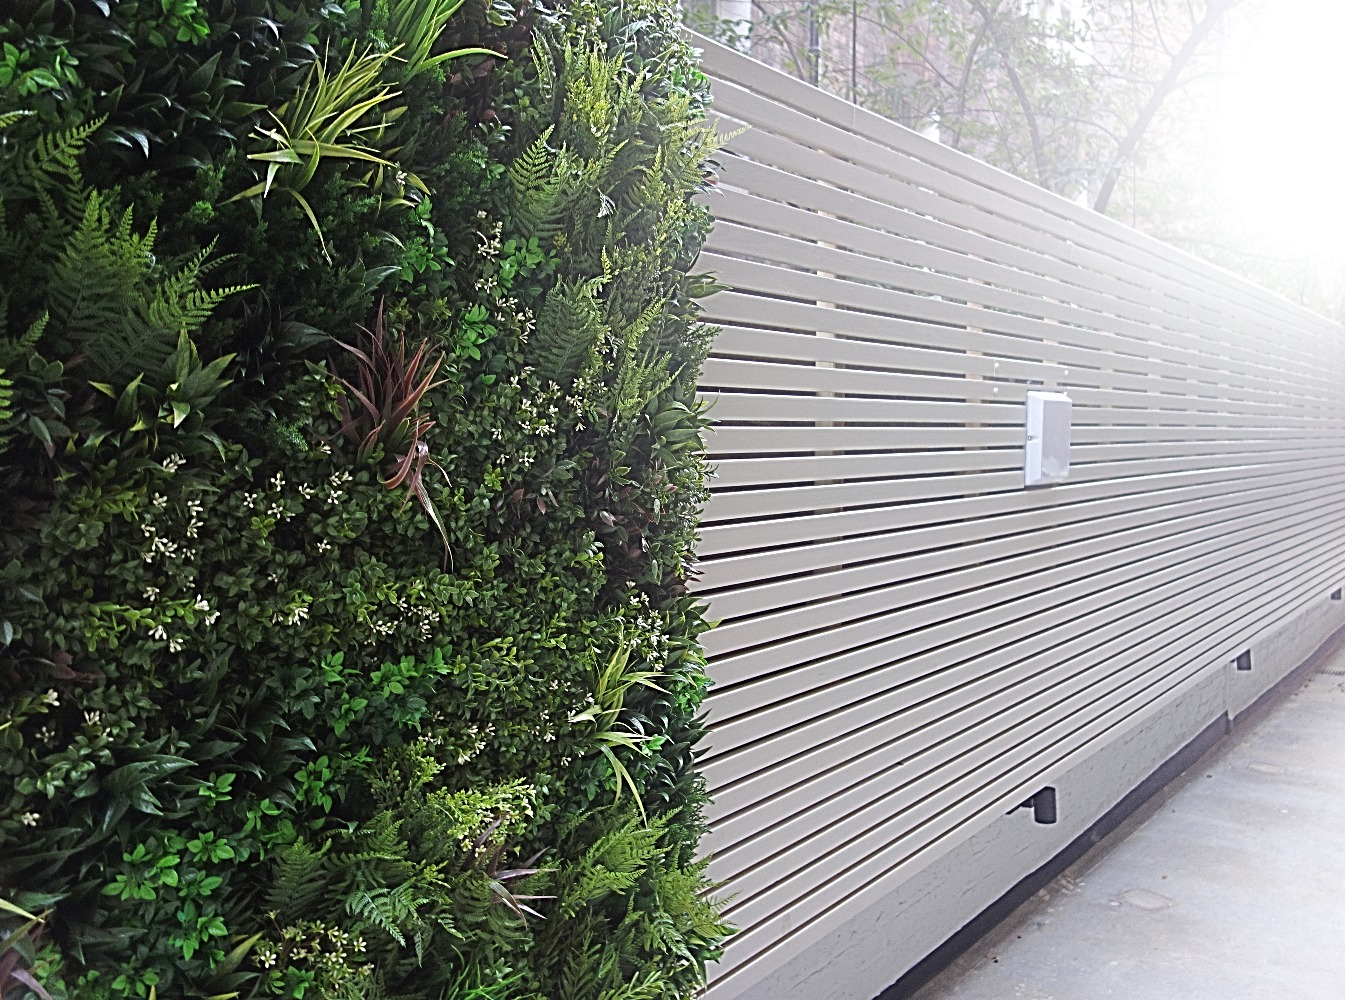 A white fence decorated with vegetation.